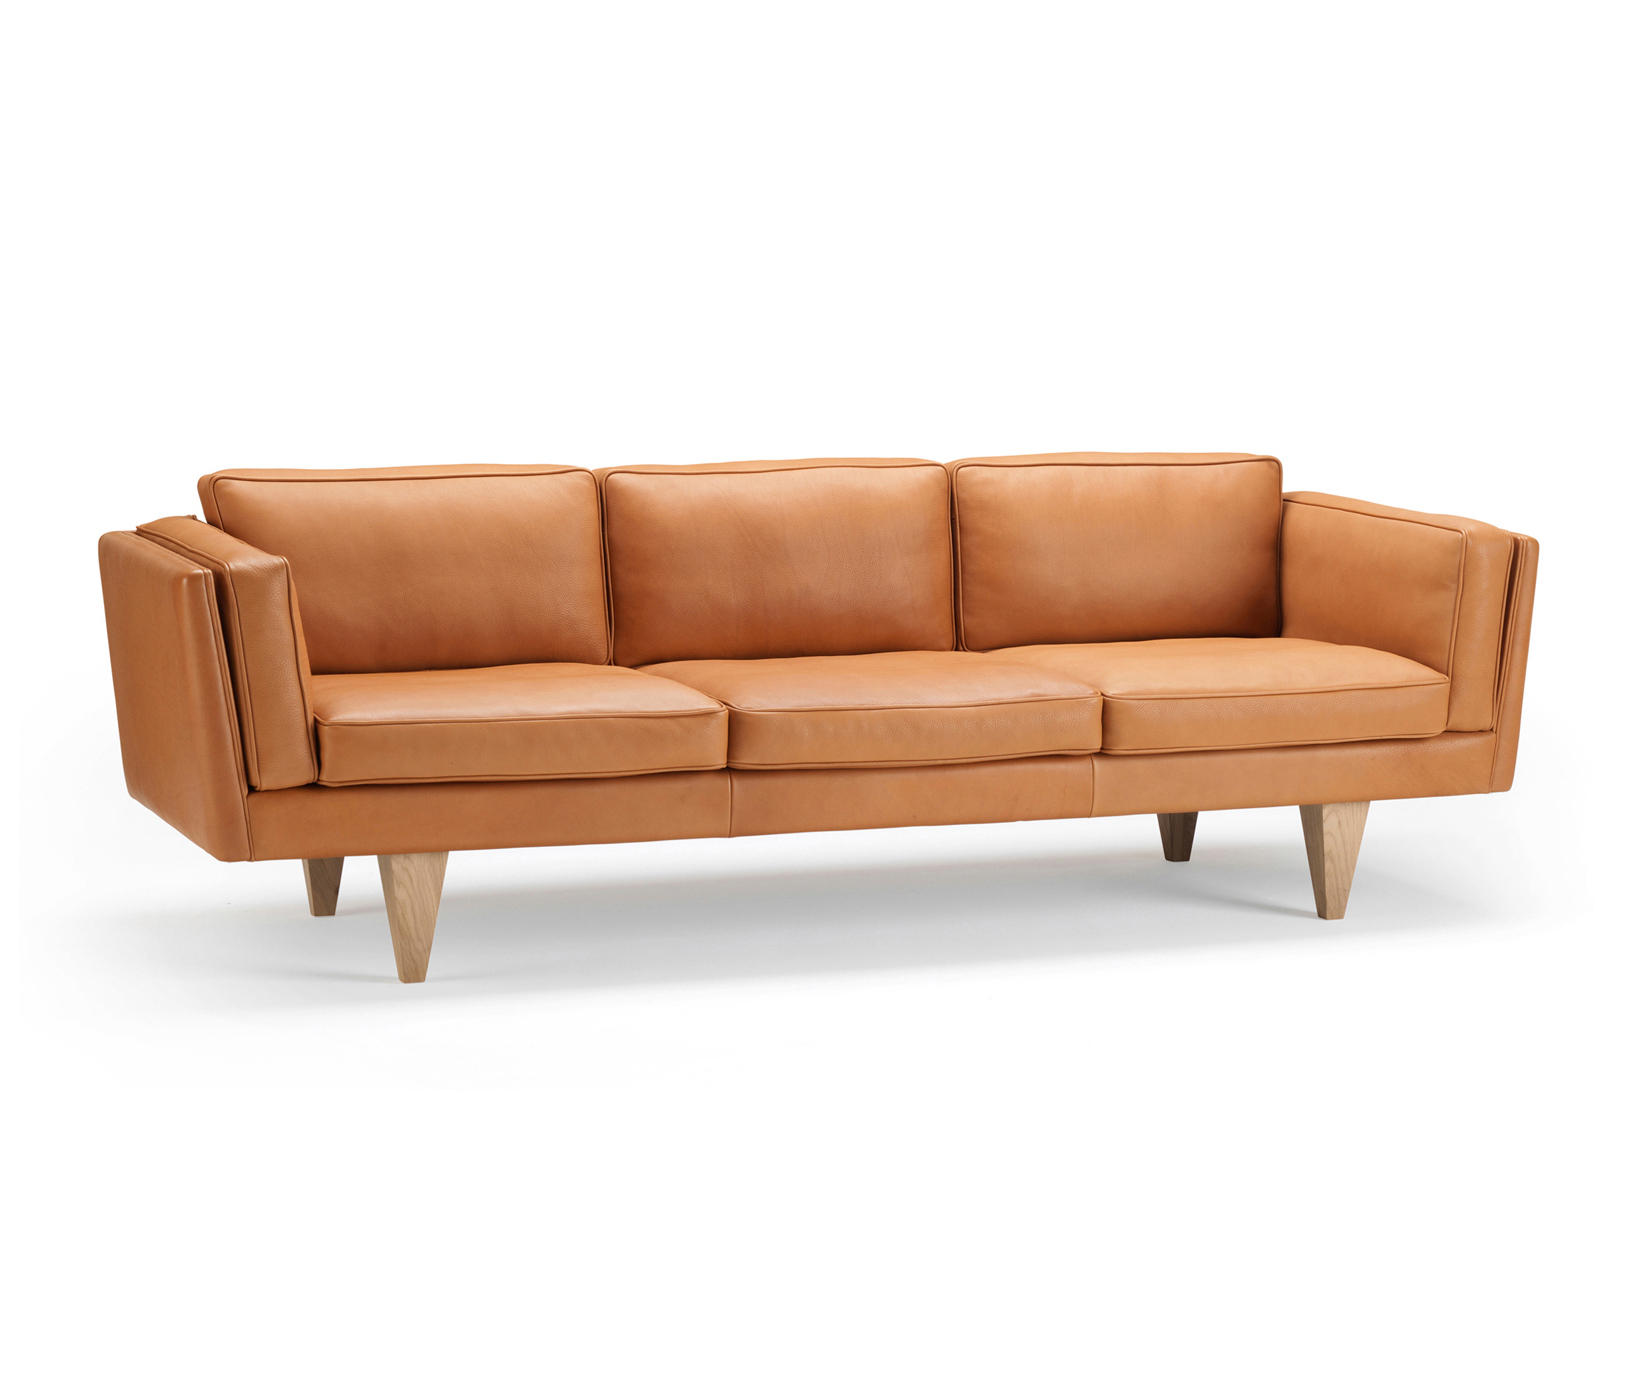 v11 sofa lounge sofas from stouby architonic. Black Bedroom Furniture Sets. Home Design Ideas